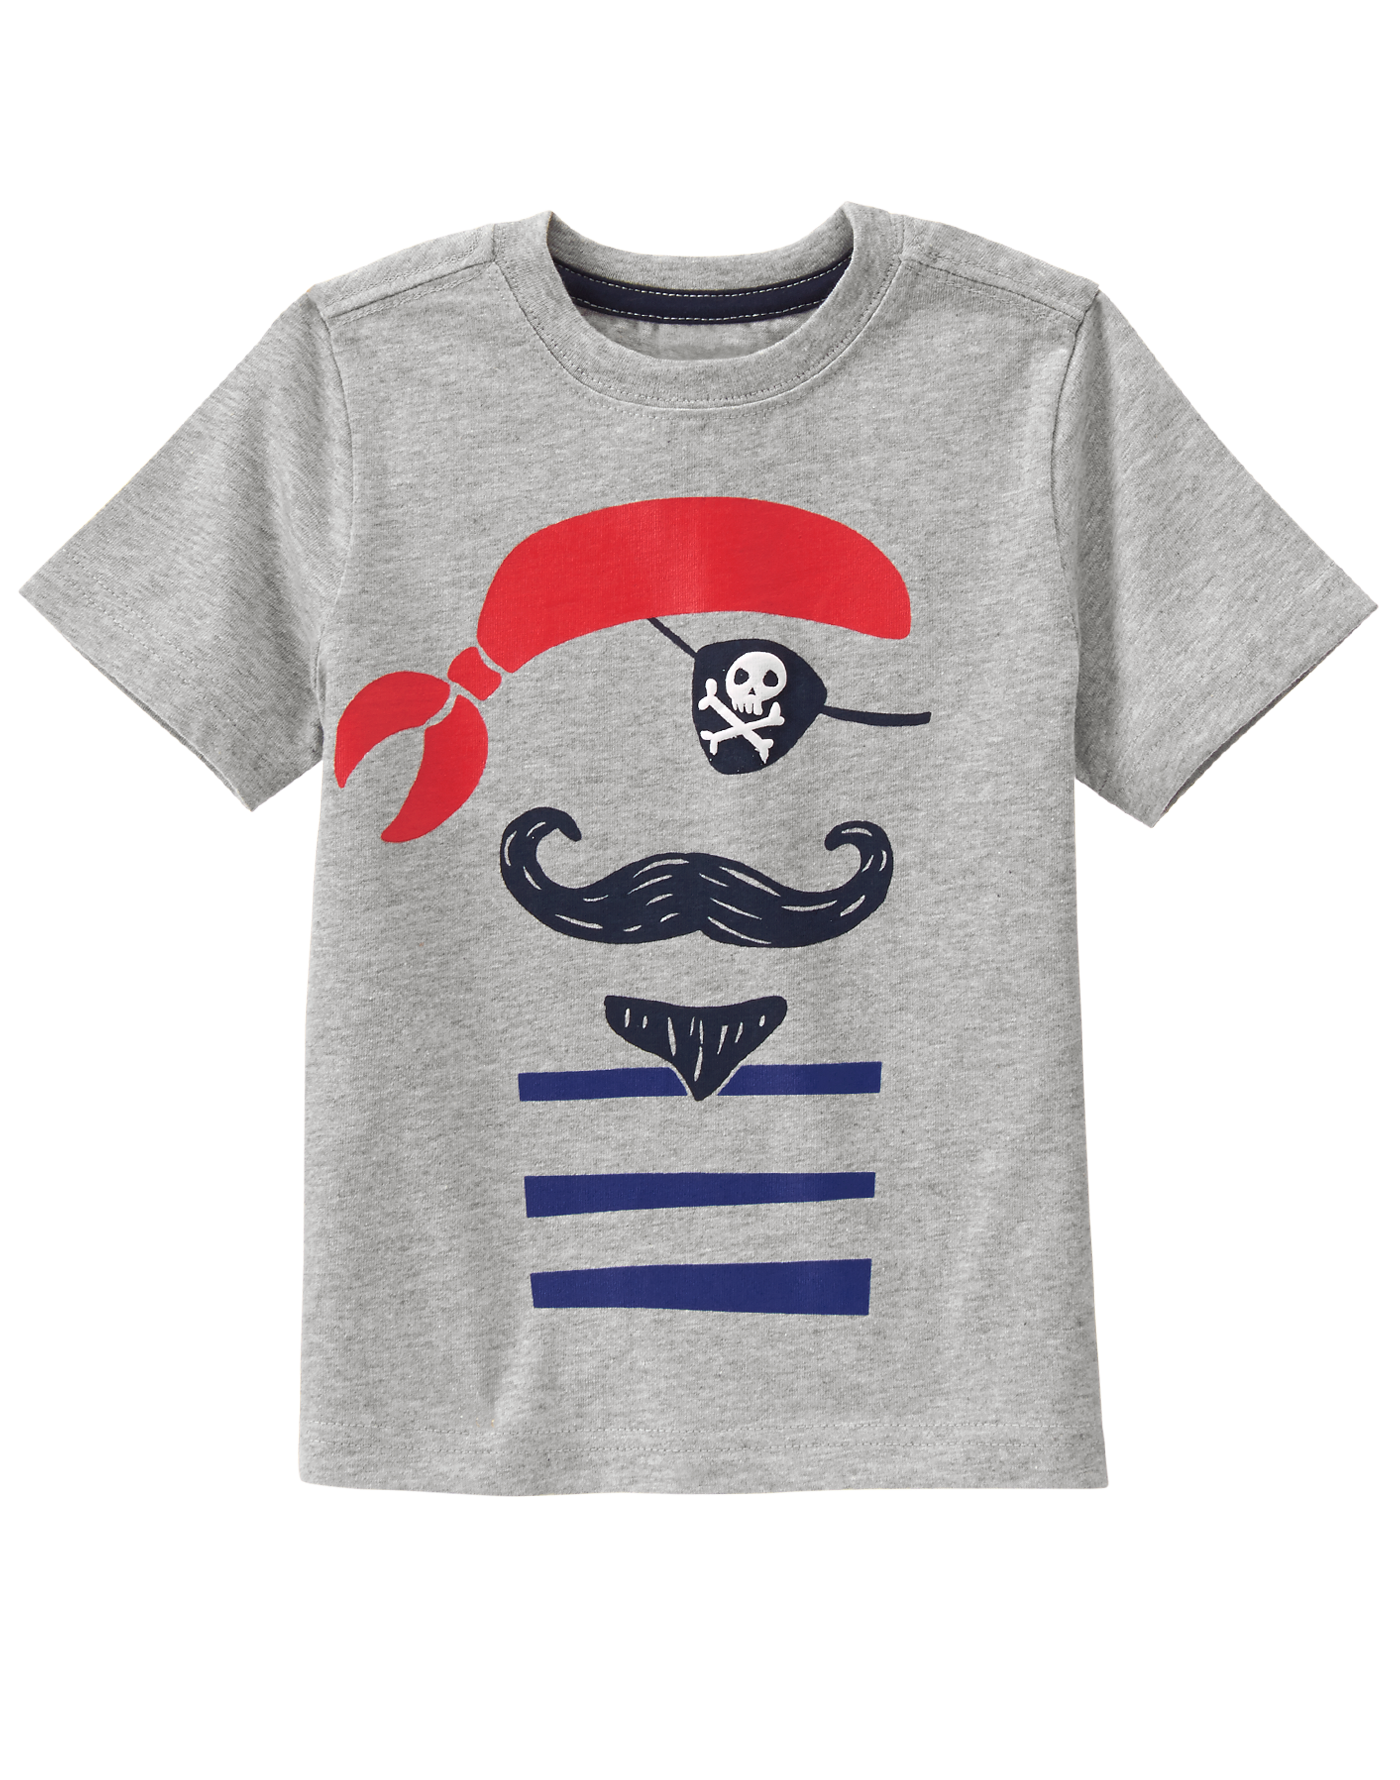 c4d938965 Pirate Tee | Big Boy Teddy | Trendy toddler boy clothes, Stylish ...